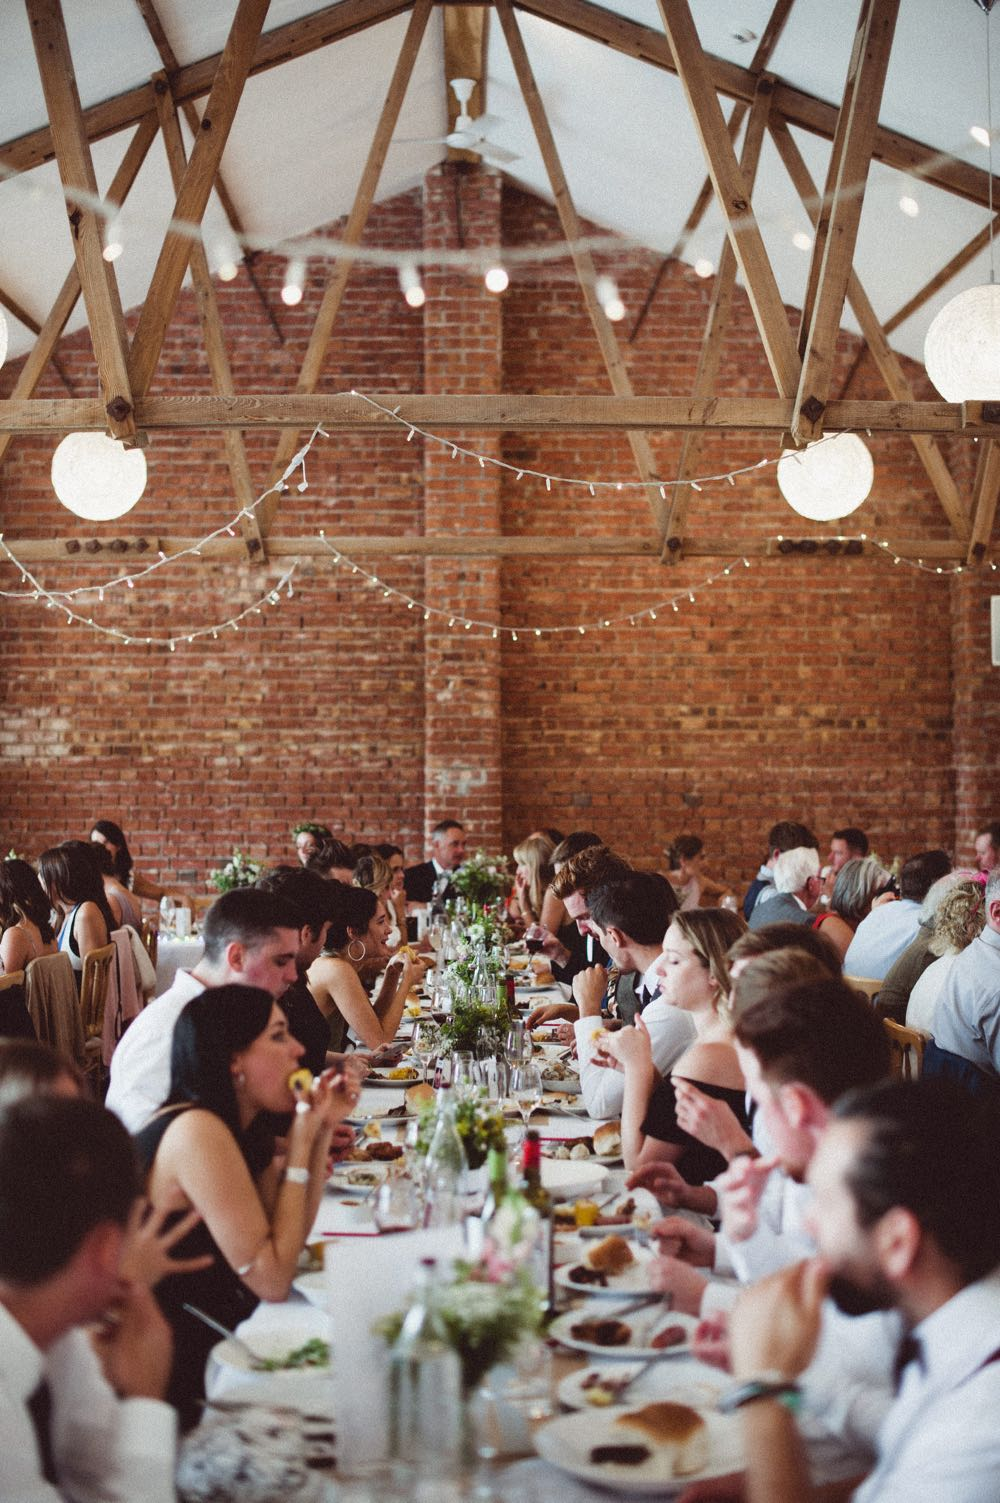 A group of guests are sitting at  trestle table in front of a Red Brick wall.